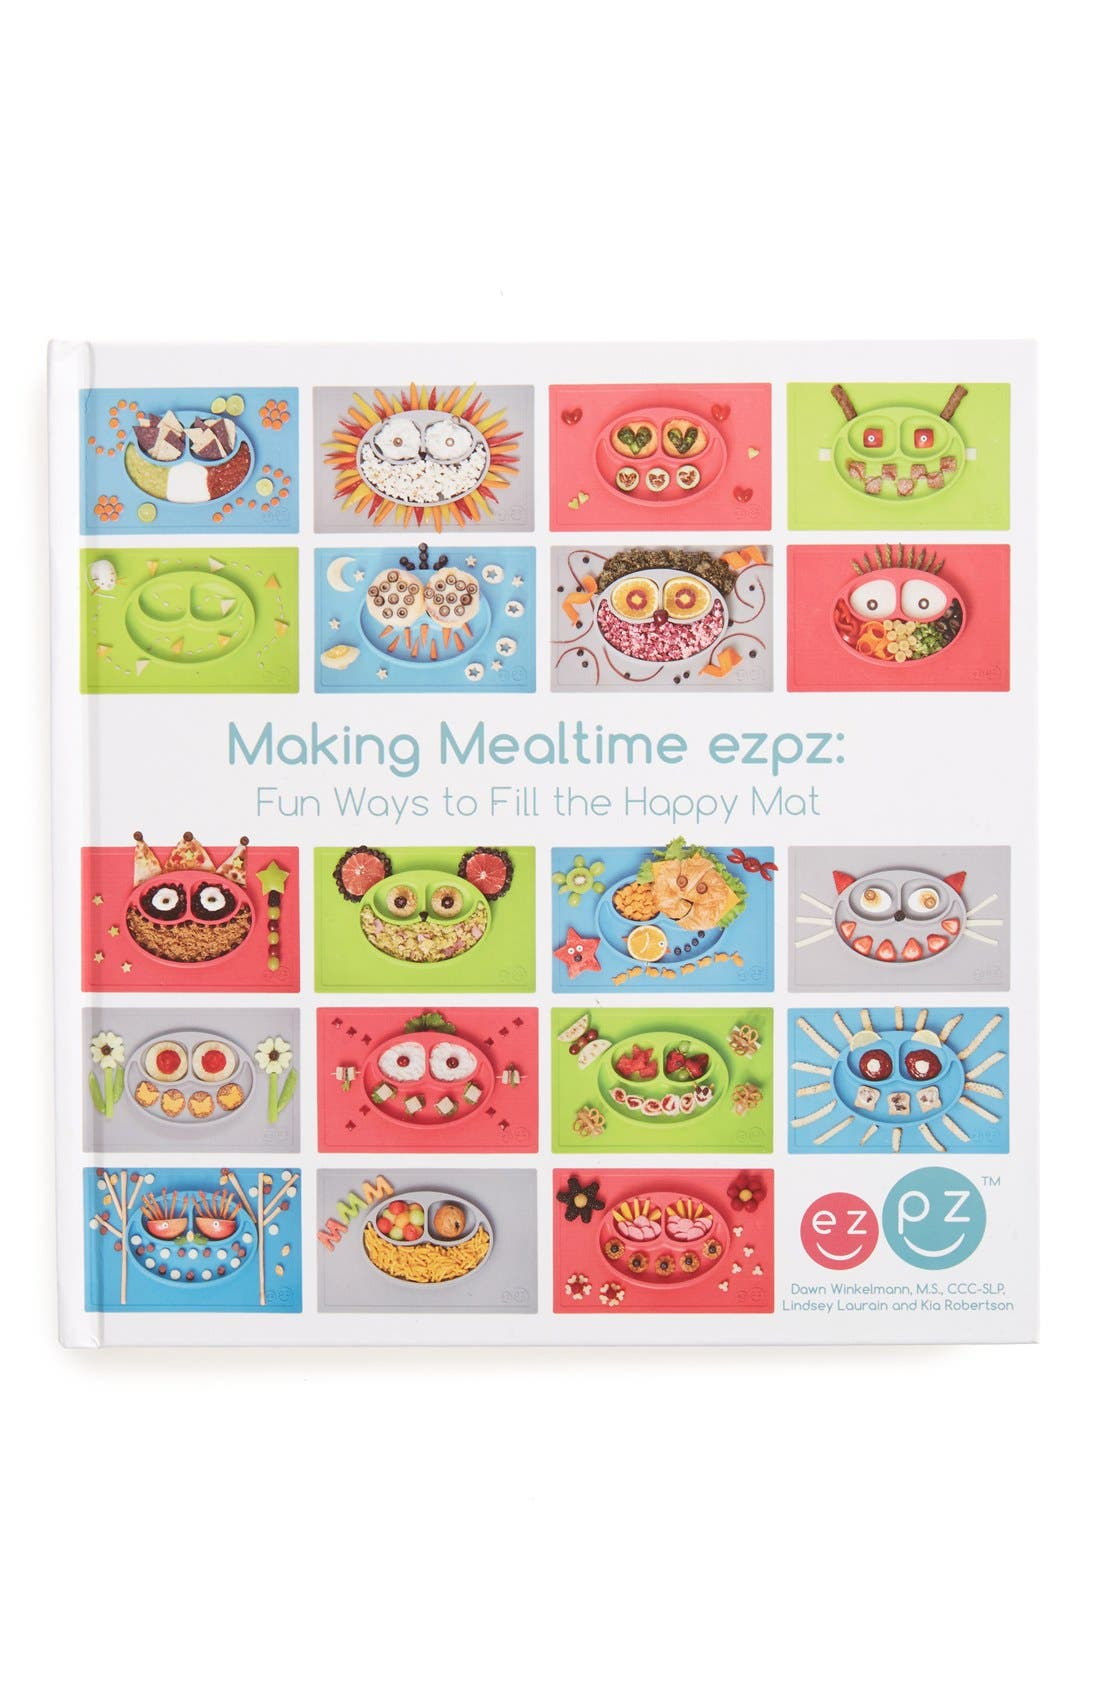 Making Mealtime ezpz: Fun Ways to Fill the Happy Mat Book